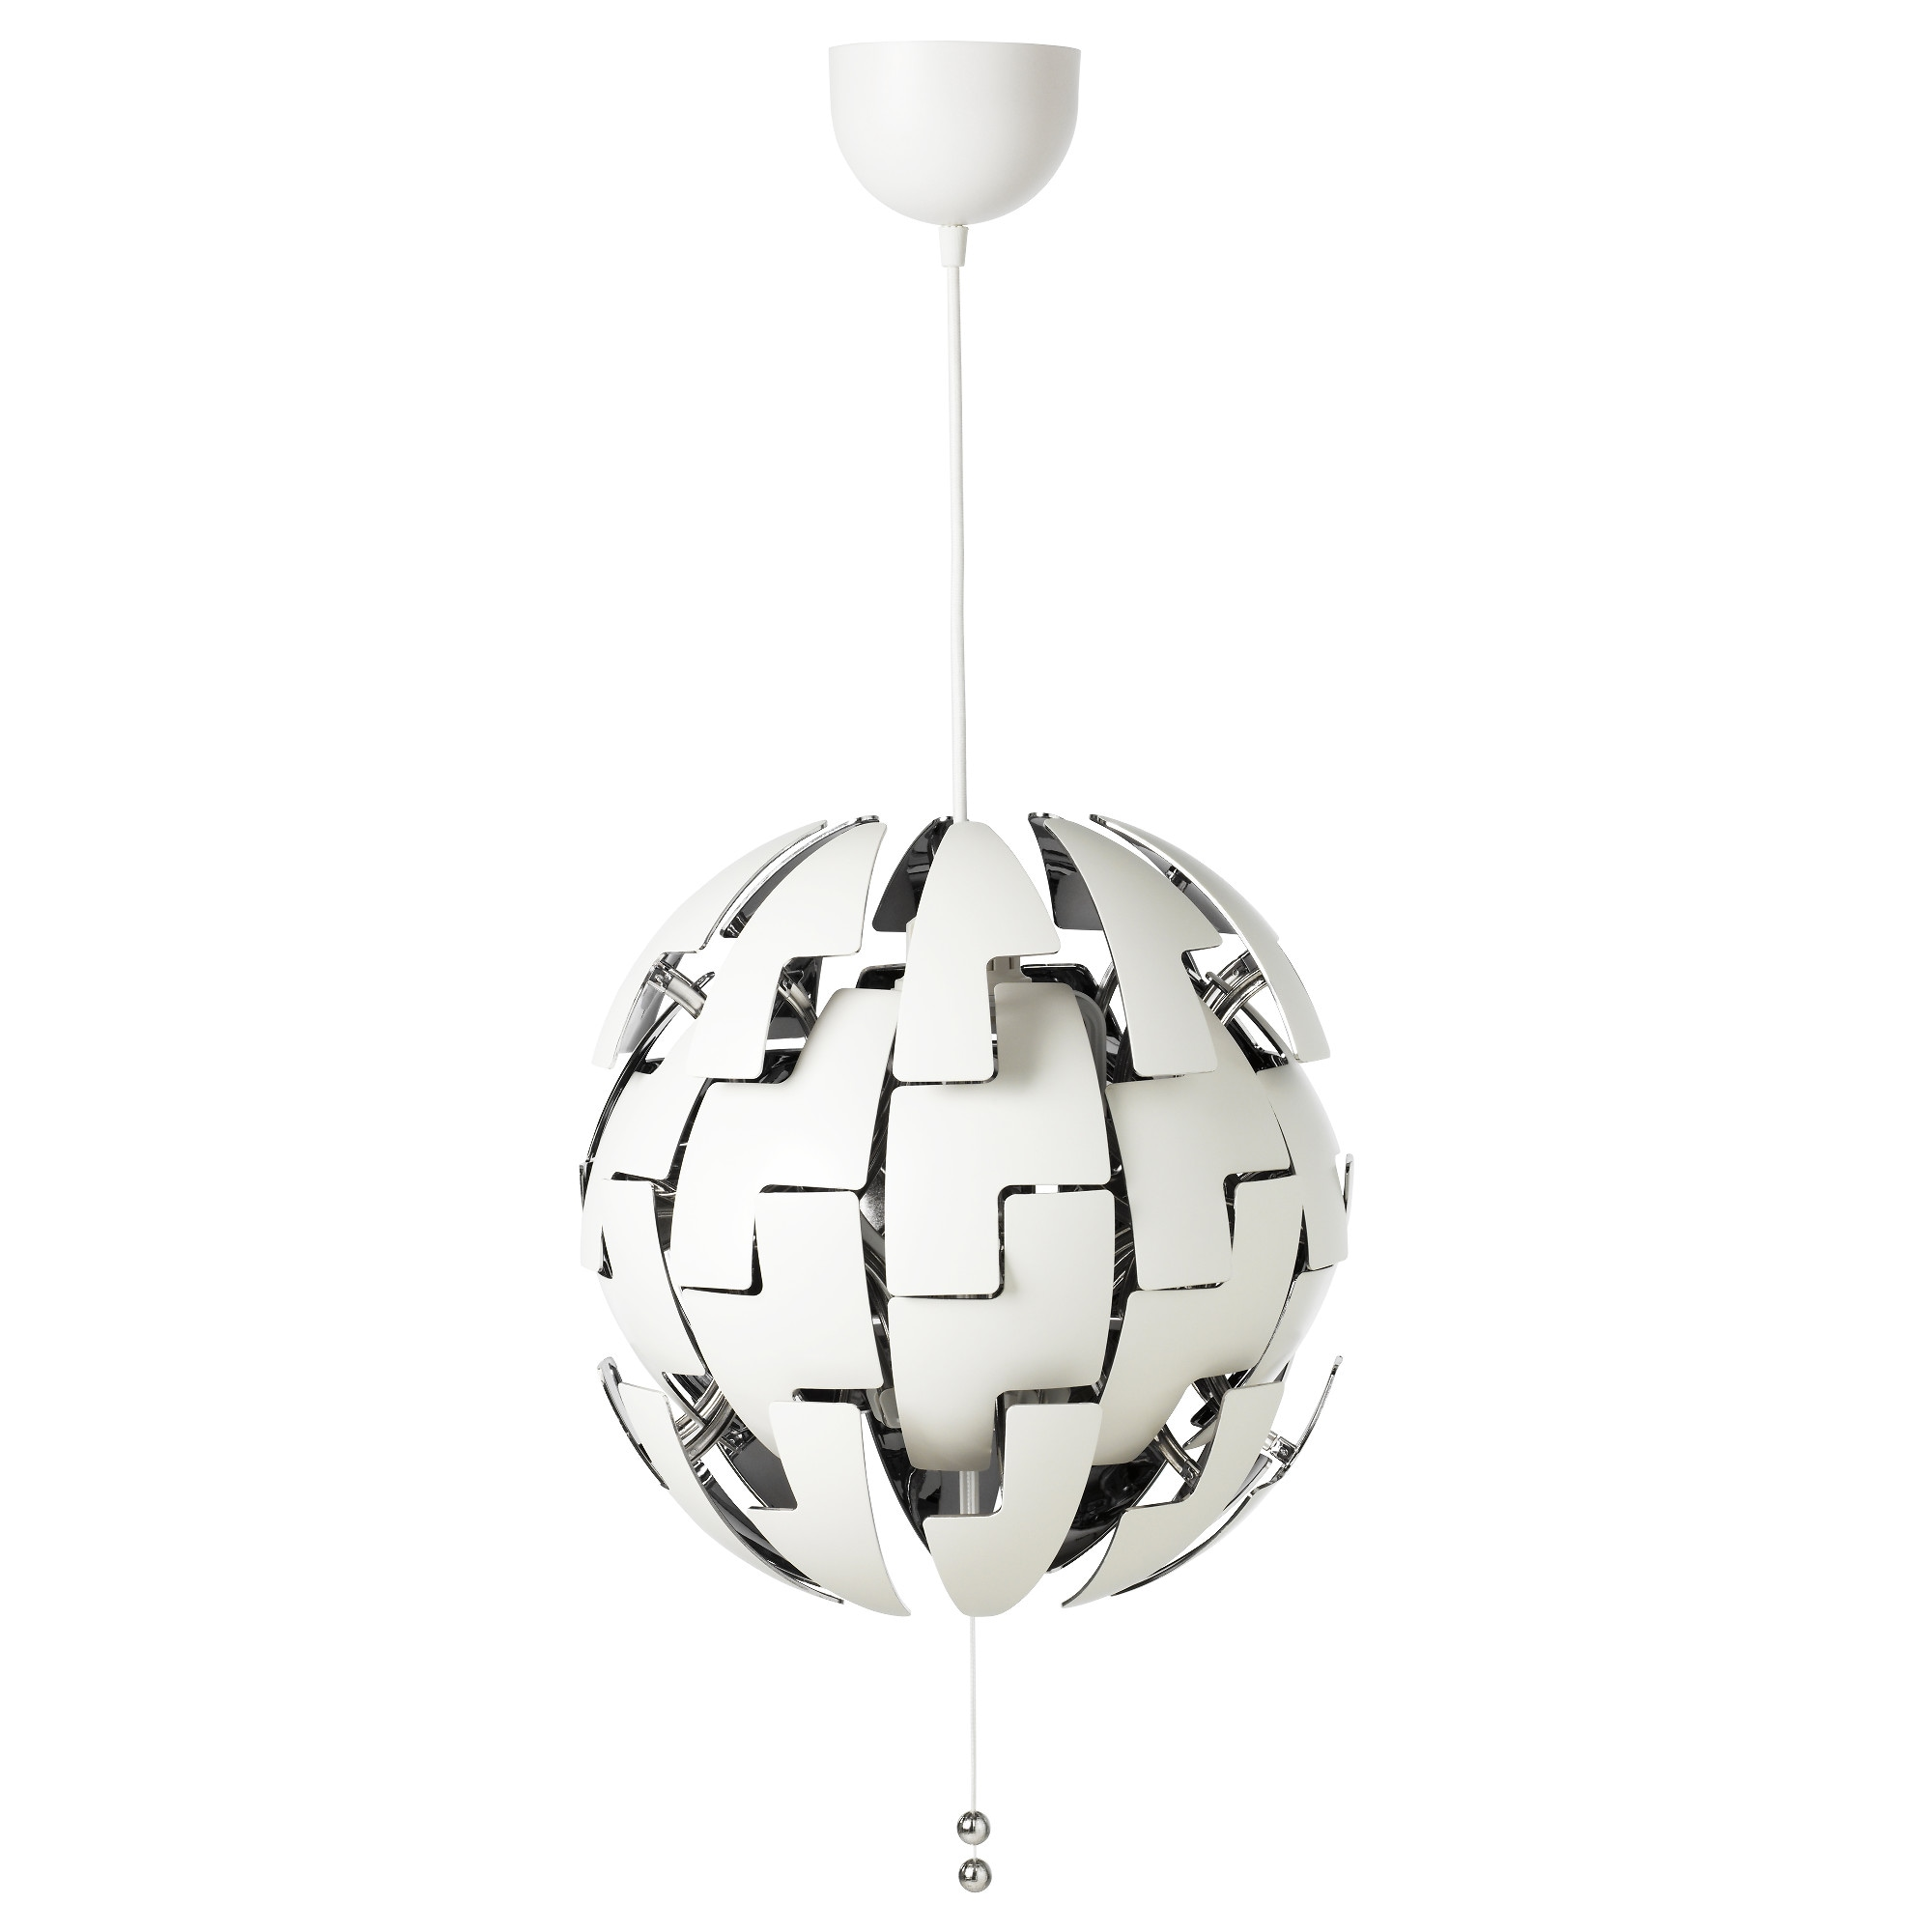 Ikea ps 2014 pendant lamp whitesilver color ikea mozeypictures Gallery